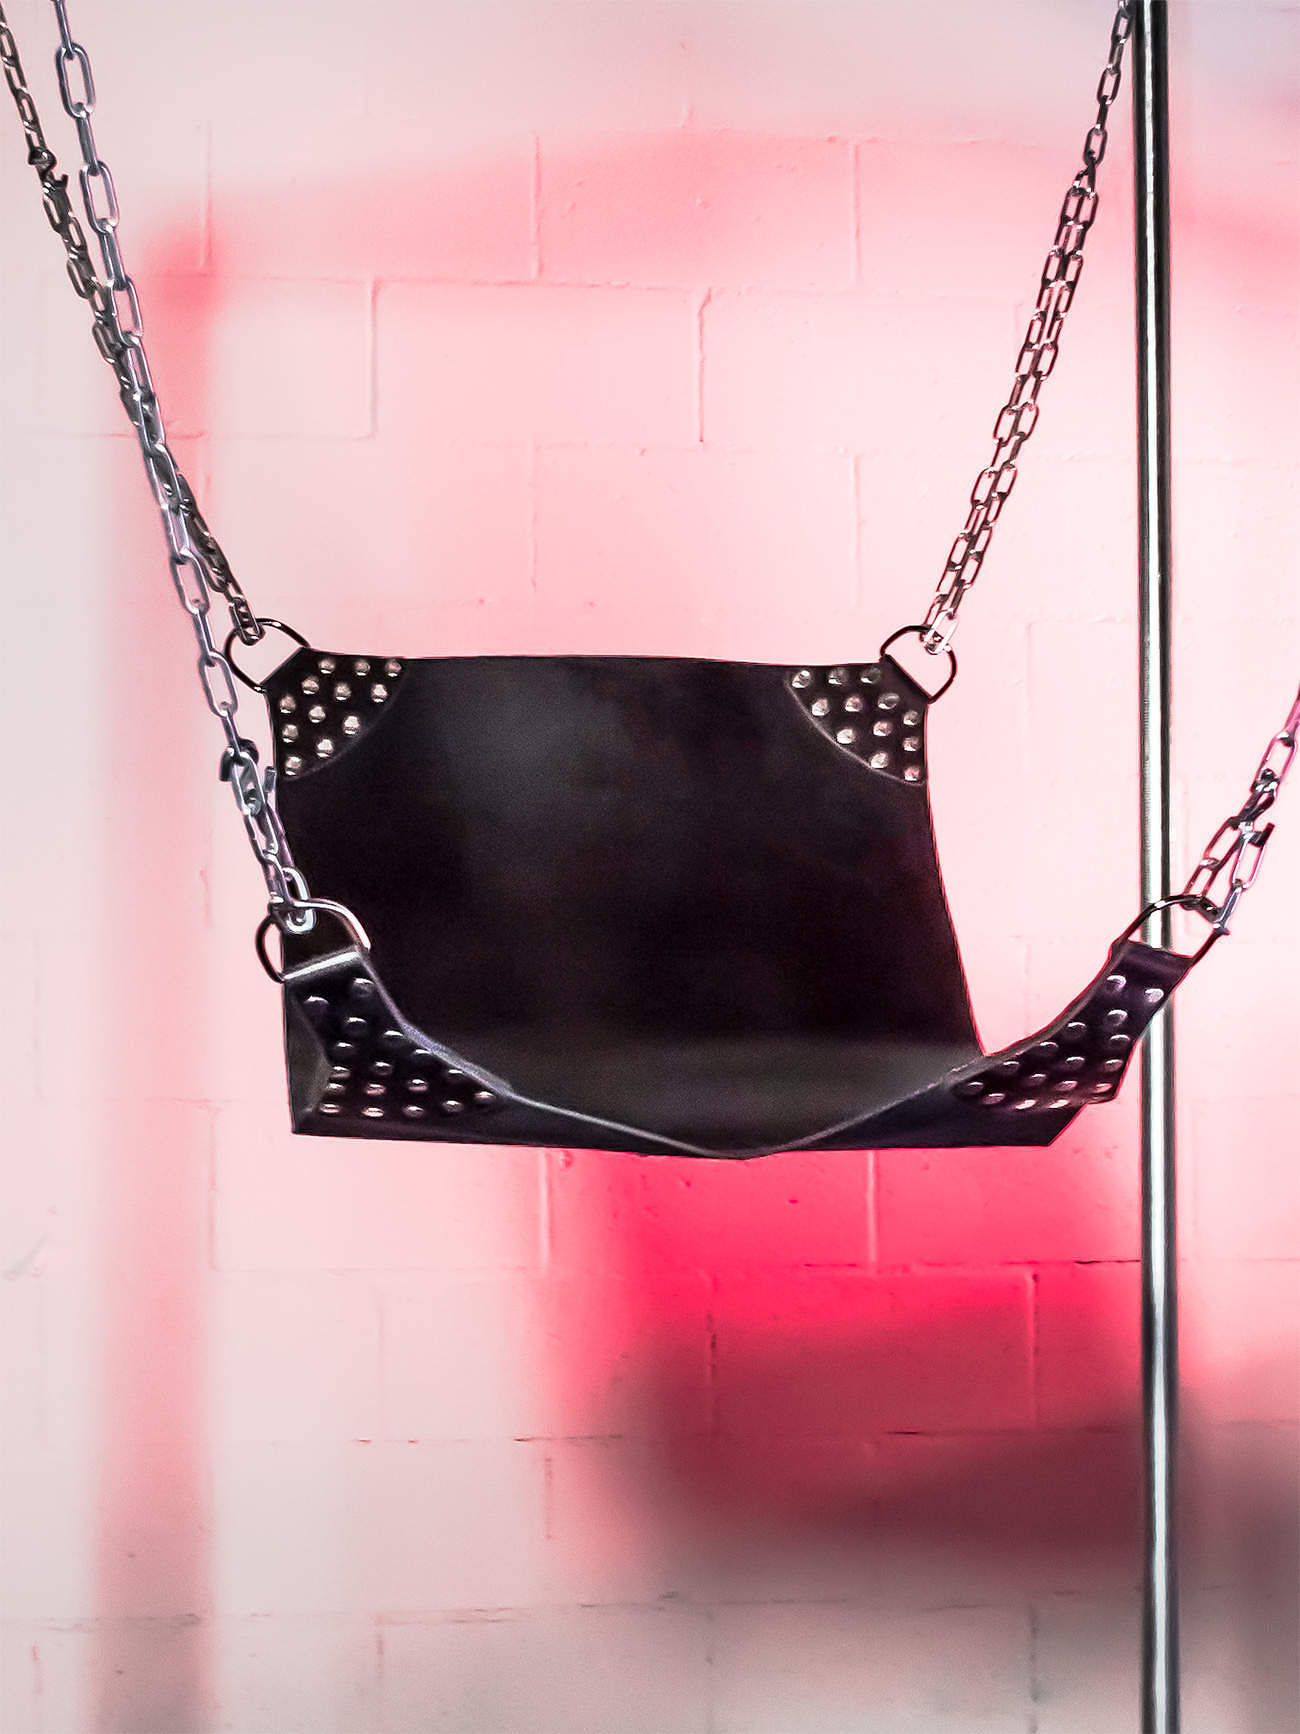 JimSupport 'Ass Master' Cut Out Leather Sling, Hanging View